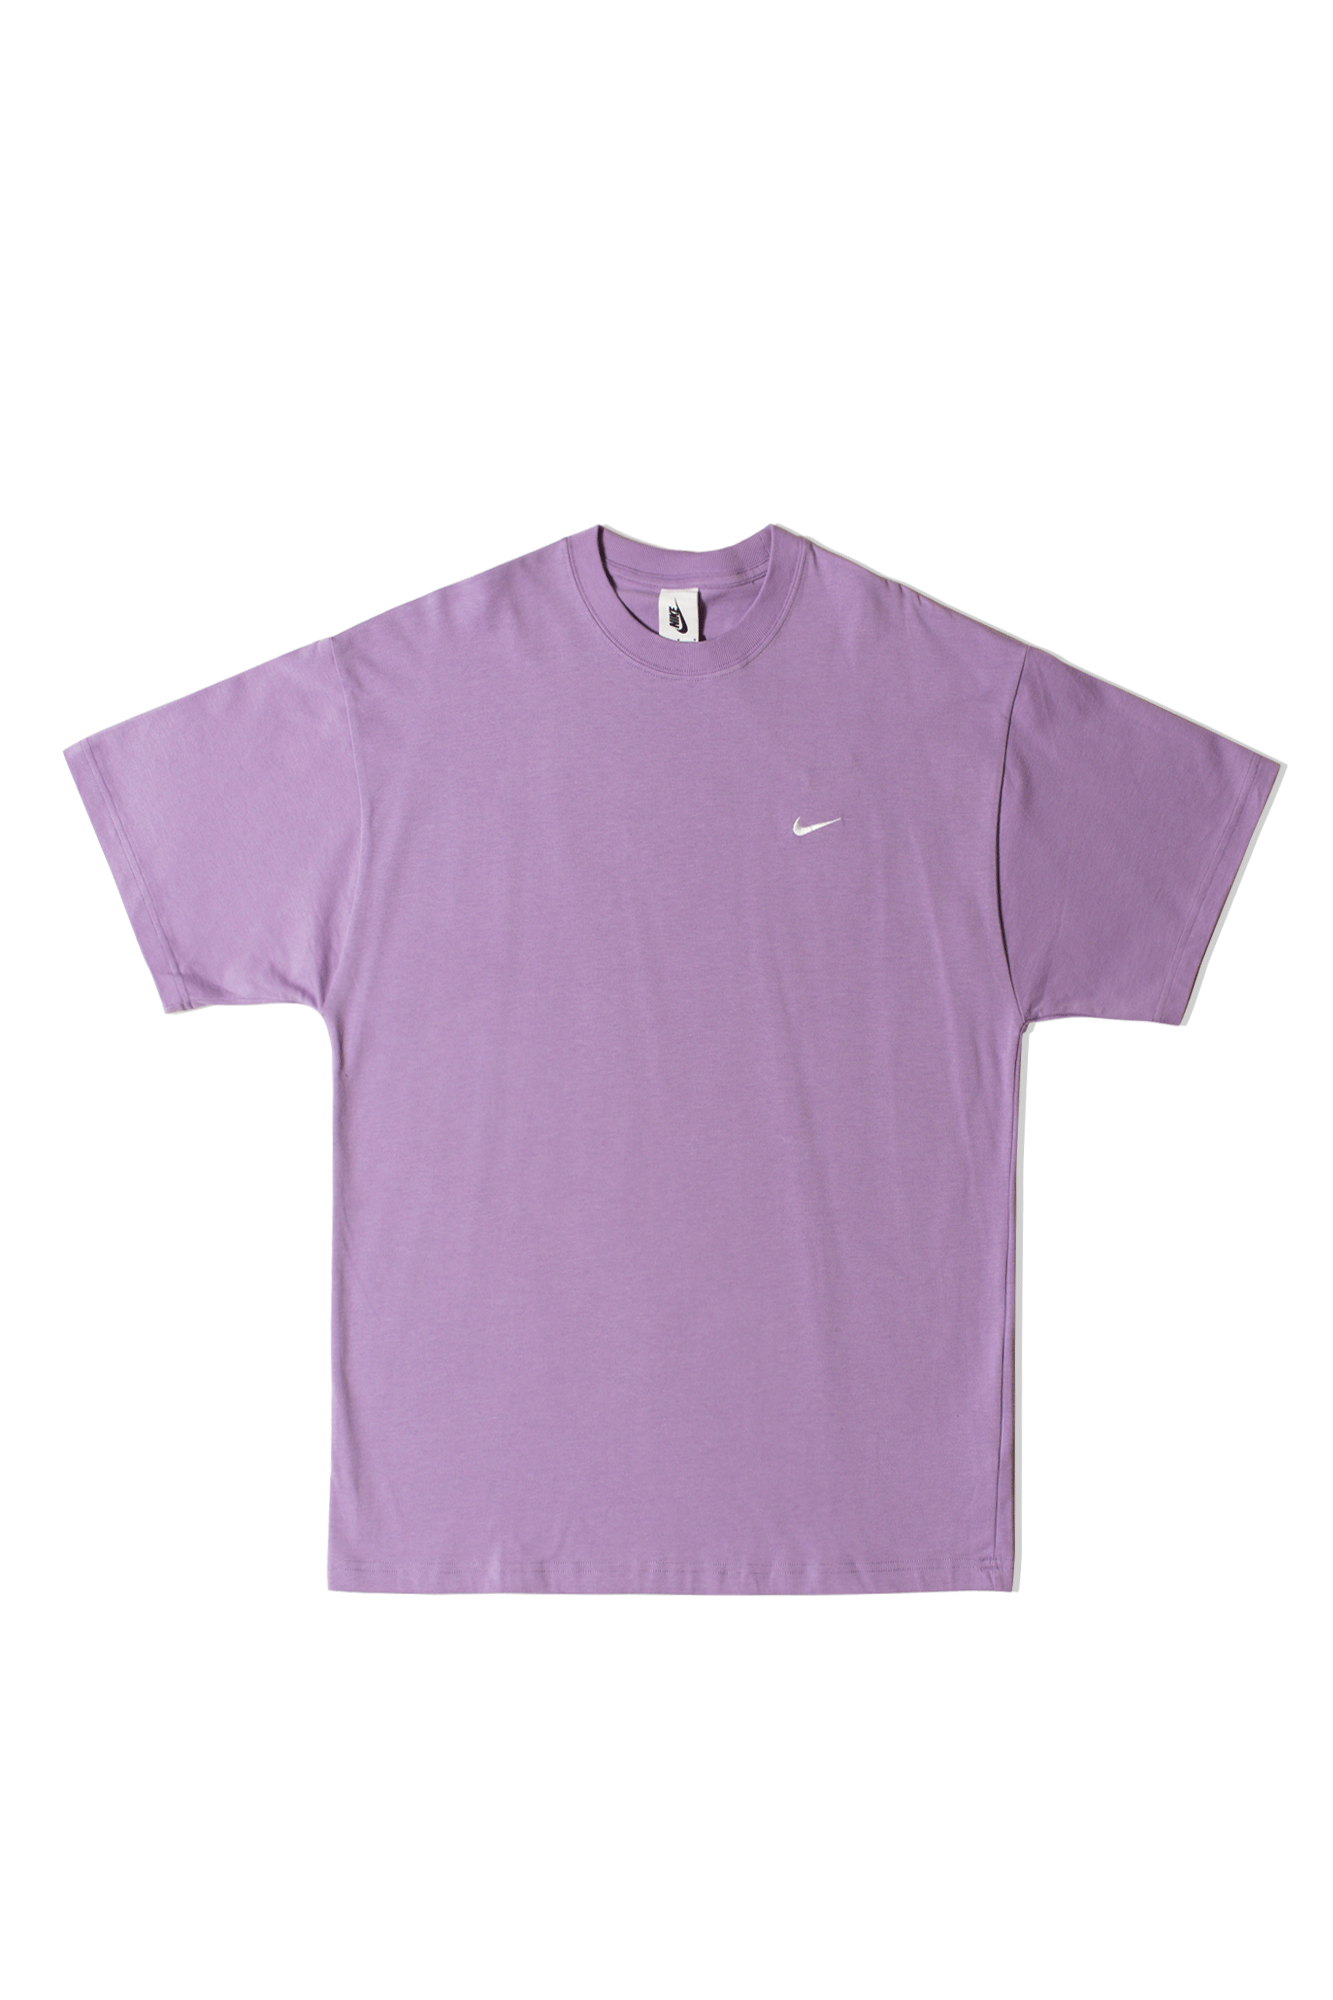 M NRG SlowSwoosh T-Shirt Purple